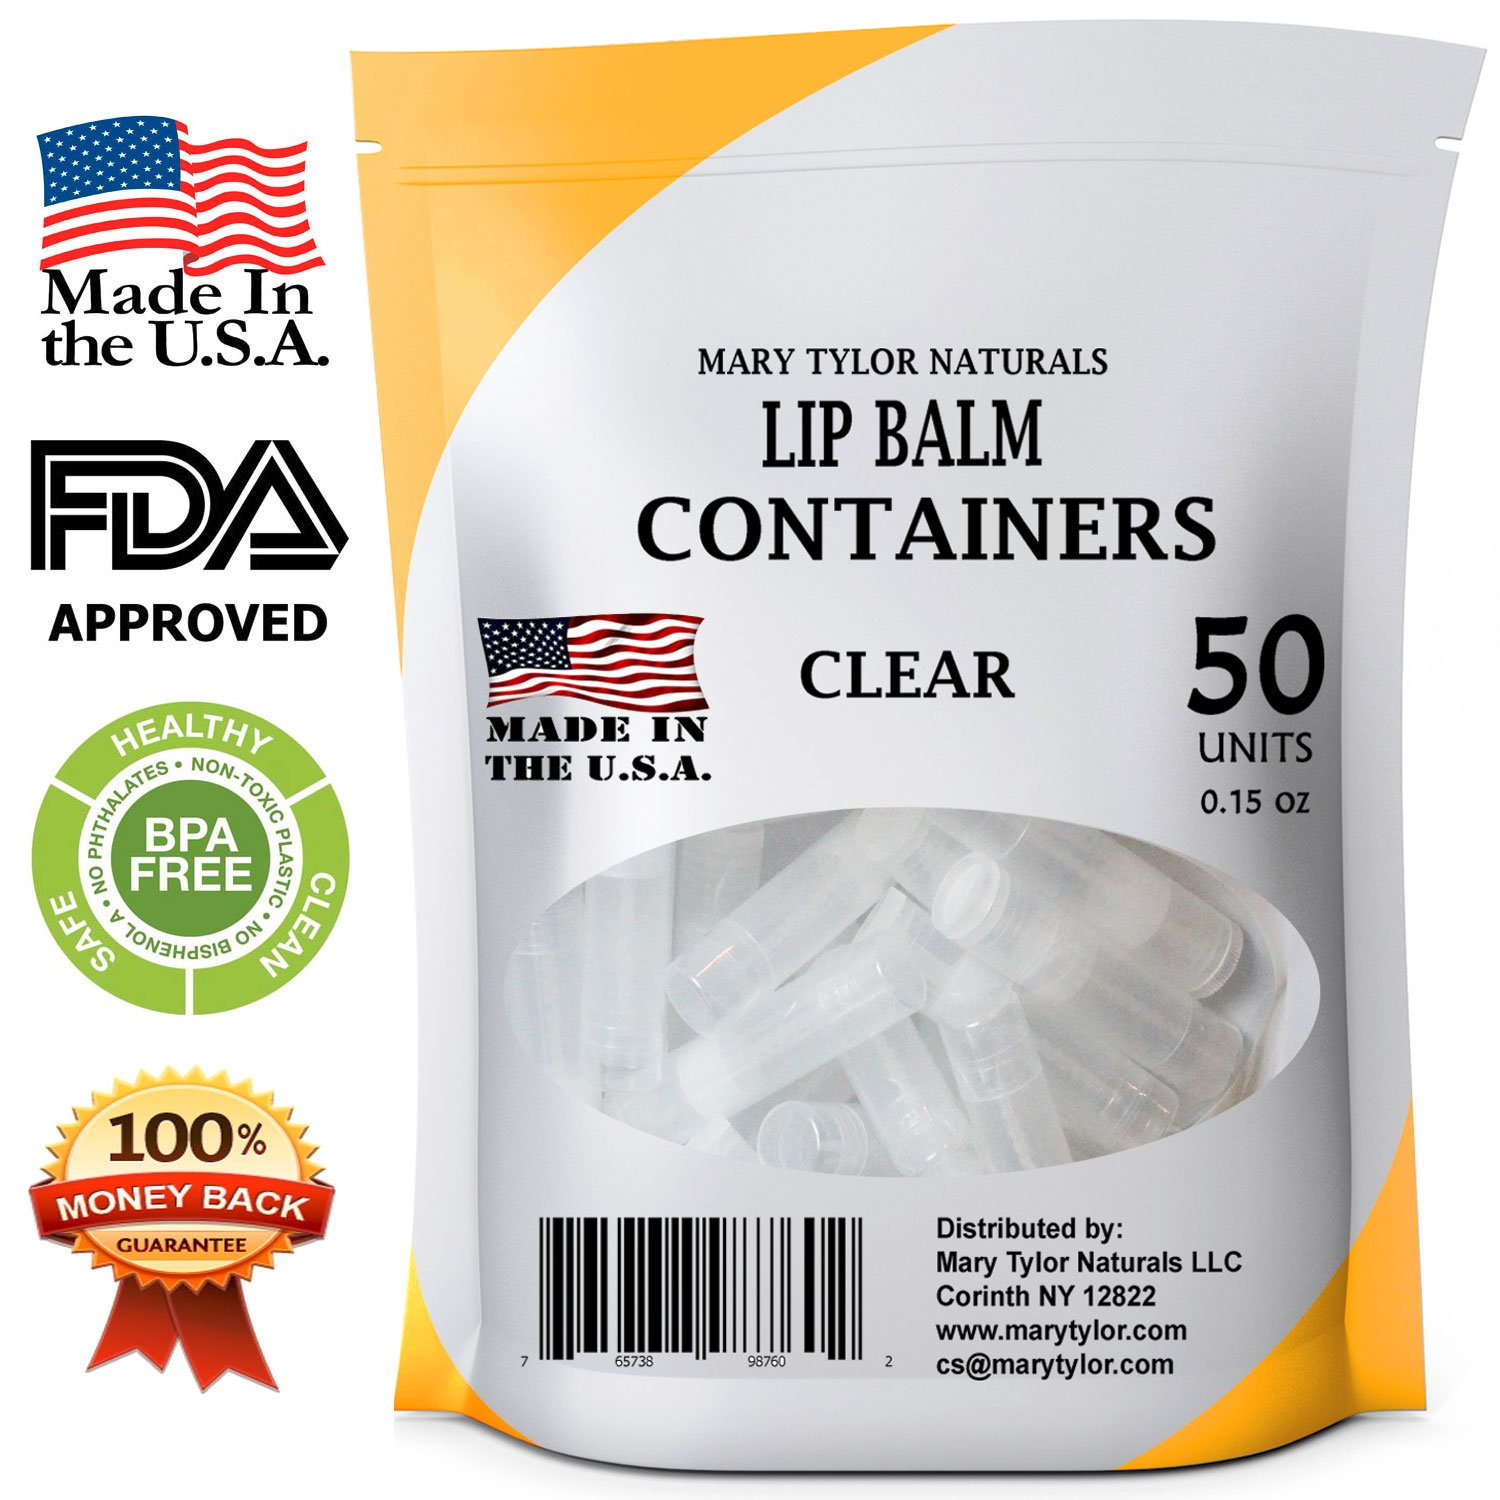 Mary Tylor Naturals Lip Balm Containers, 50 Clear Round Tubes, BPA Free, Made in USA, FDA Approved, 100% BPA Free, with Clear Caps For DIY Lipstick, homemade Lip Balms (50, Clear)